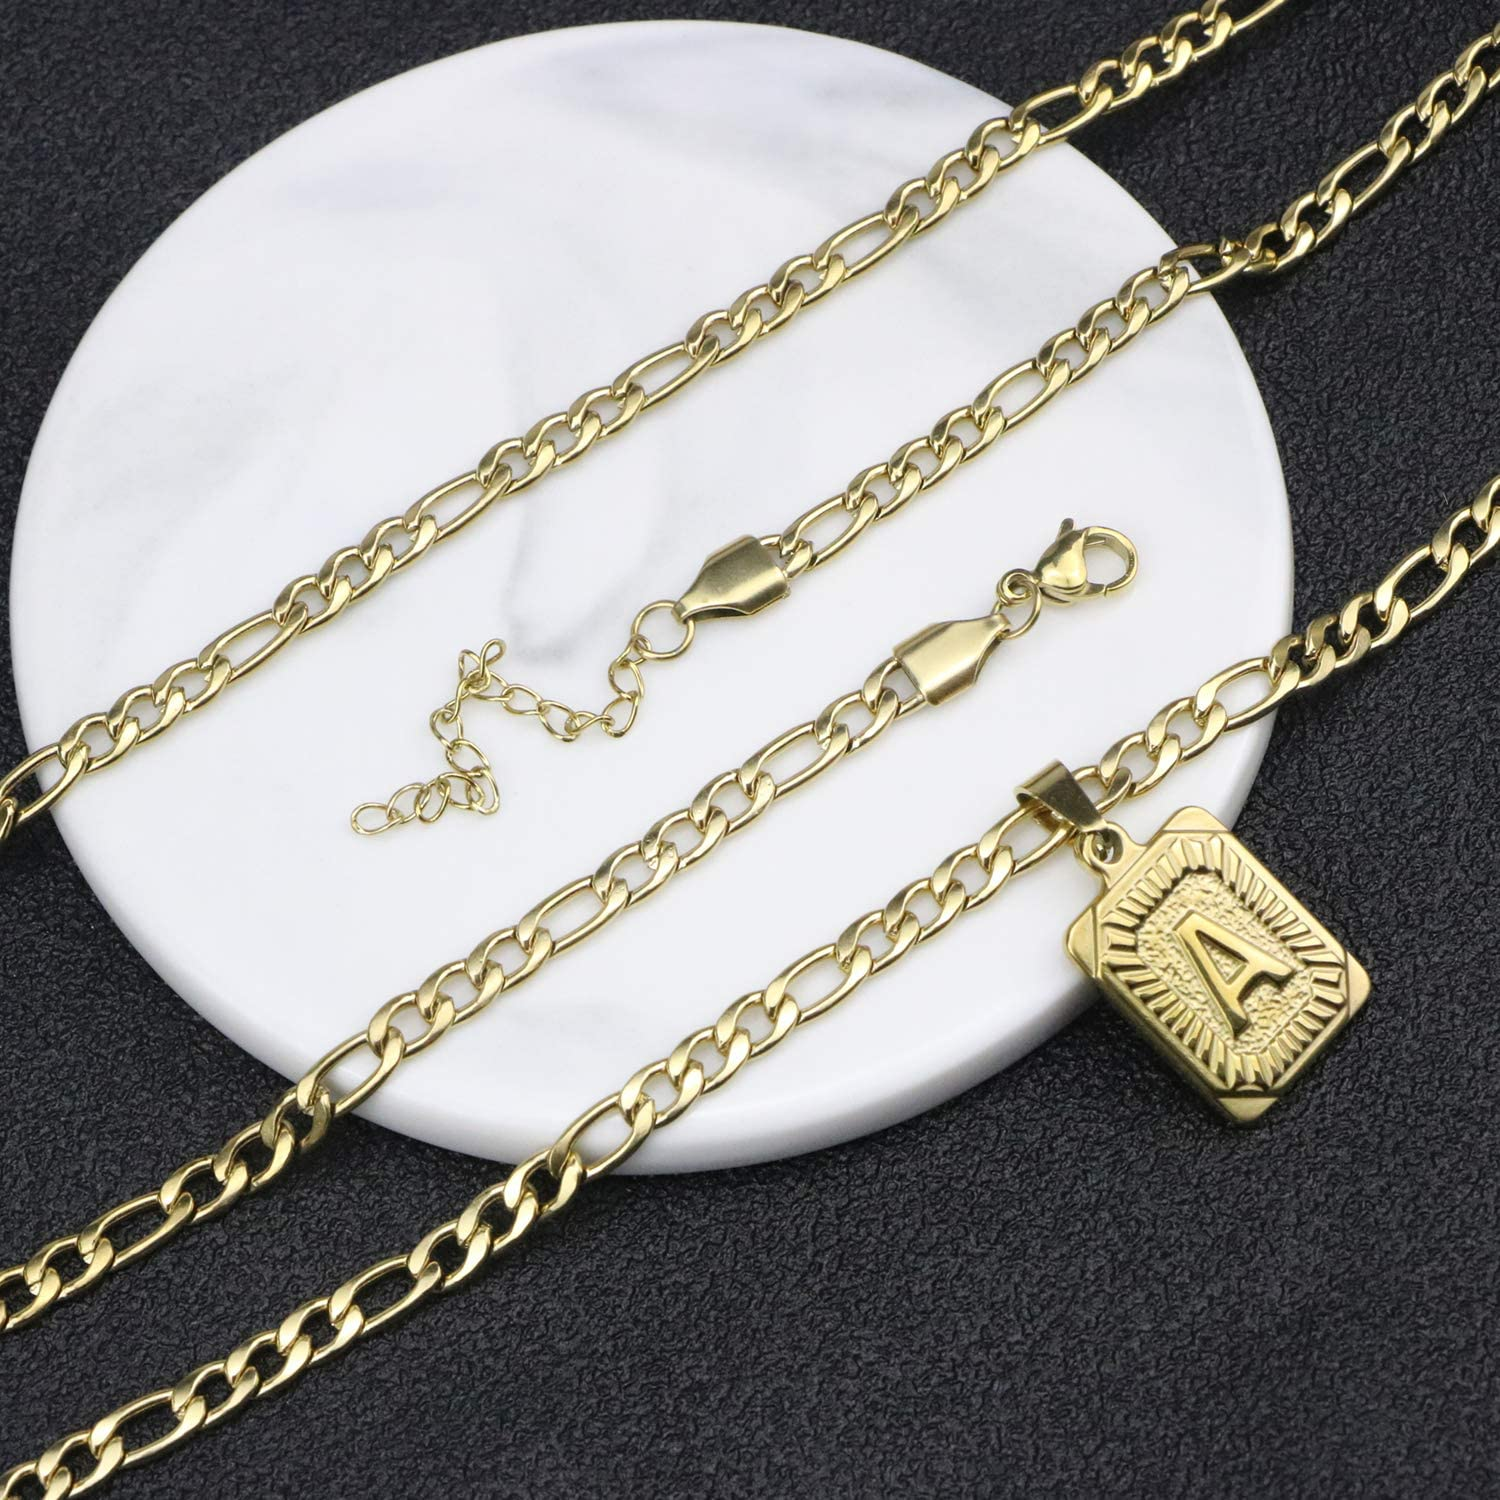 JoycuFF 18K Gold Filled Initial Letter Pendant Necklace Square Alphabet Rectangle Medallion Personalized Stainless Steel Figaro Chain Simple Jewelry Gifts for Women Men Teenage Girls BFF Mom Dad Dad